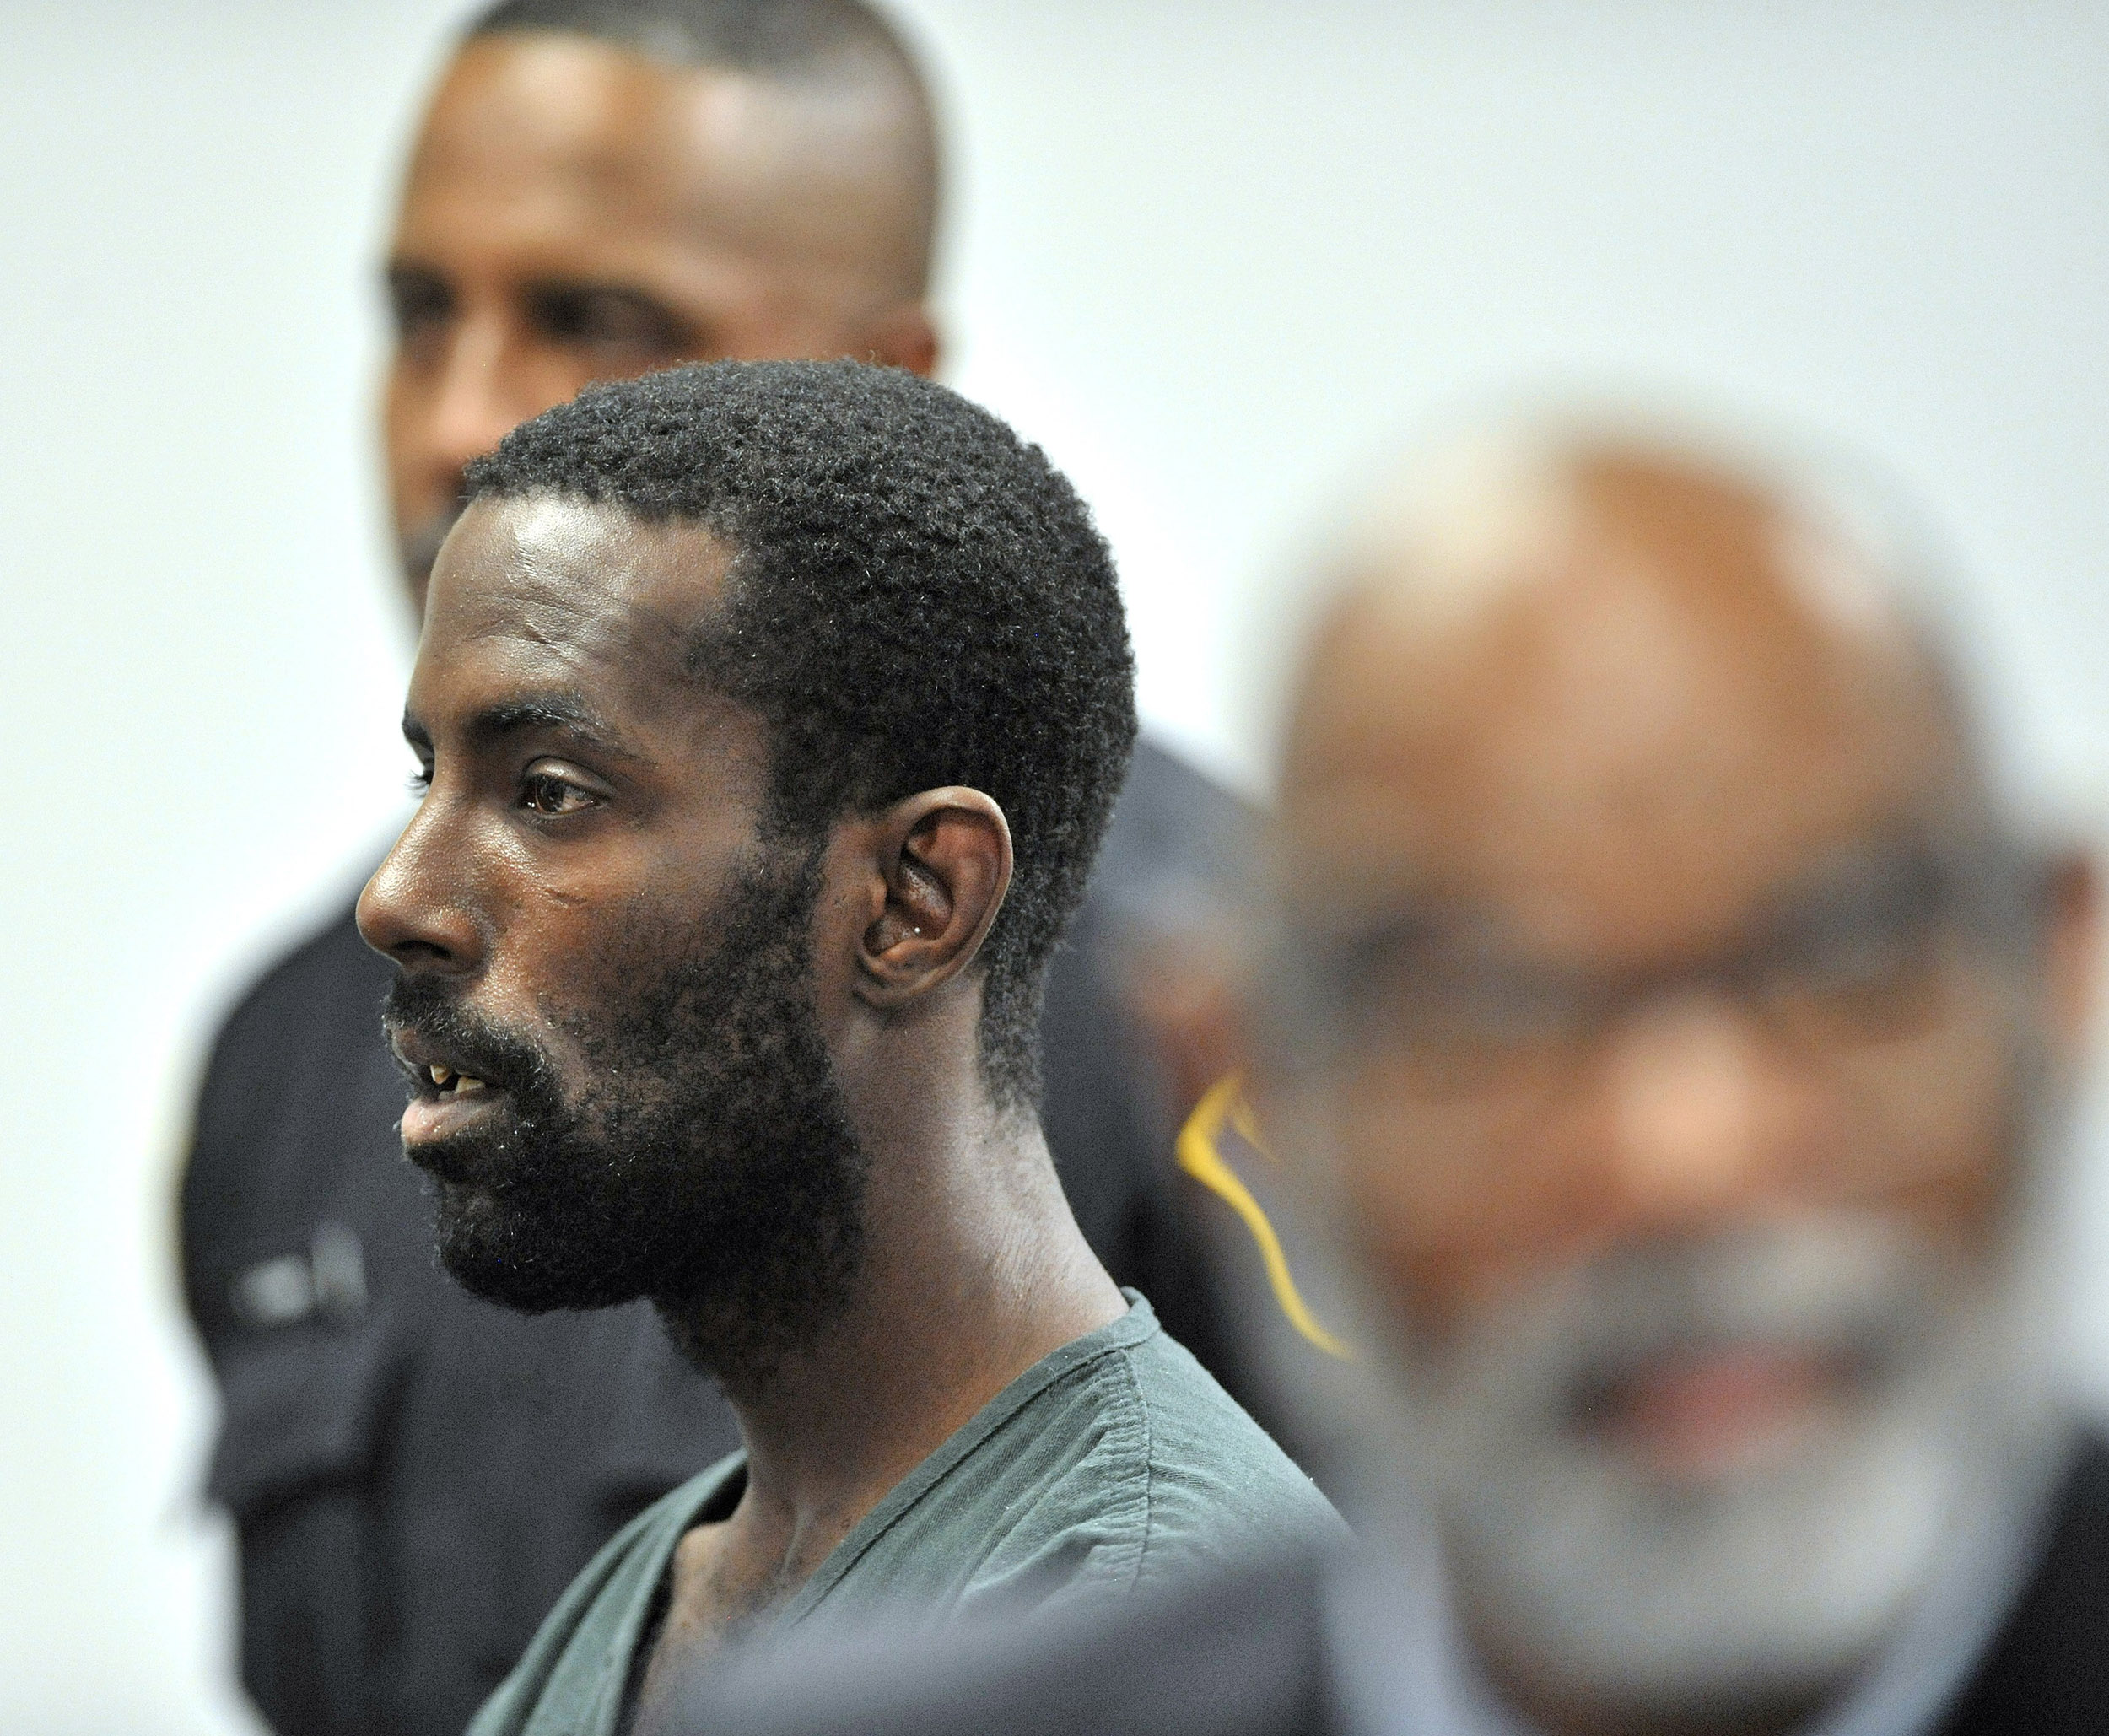 Man who prosecutors call serial killer is charged in deaths of 4 women in Detroit